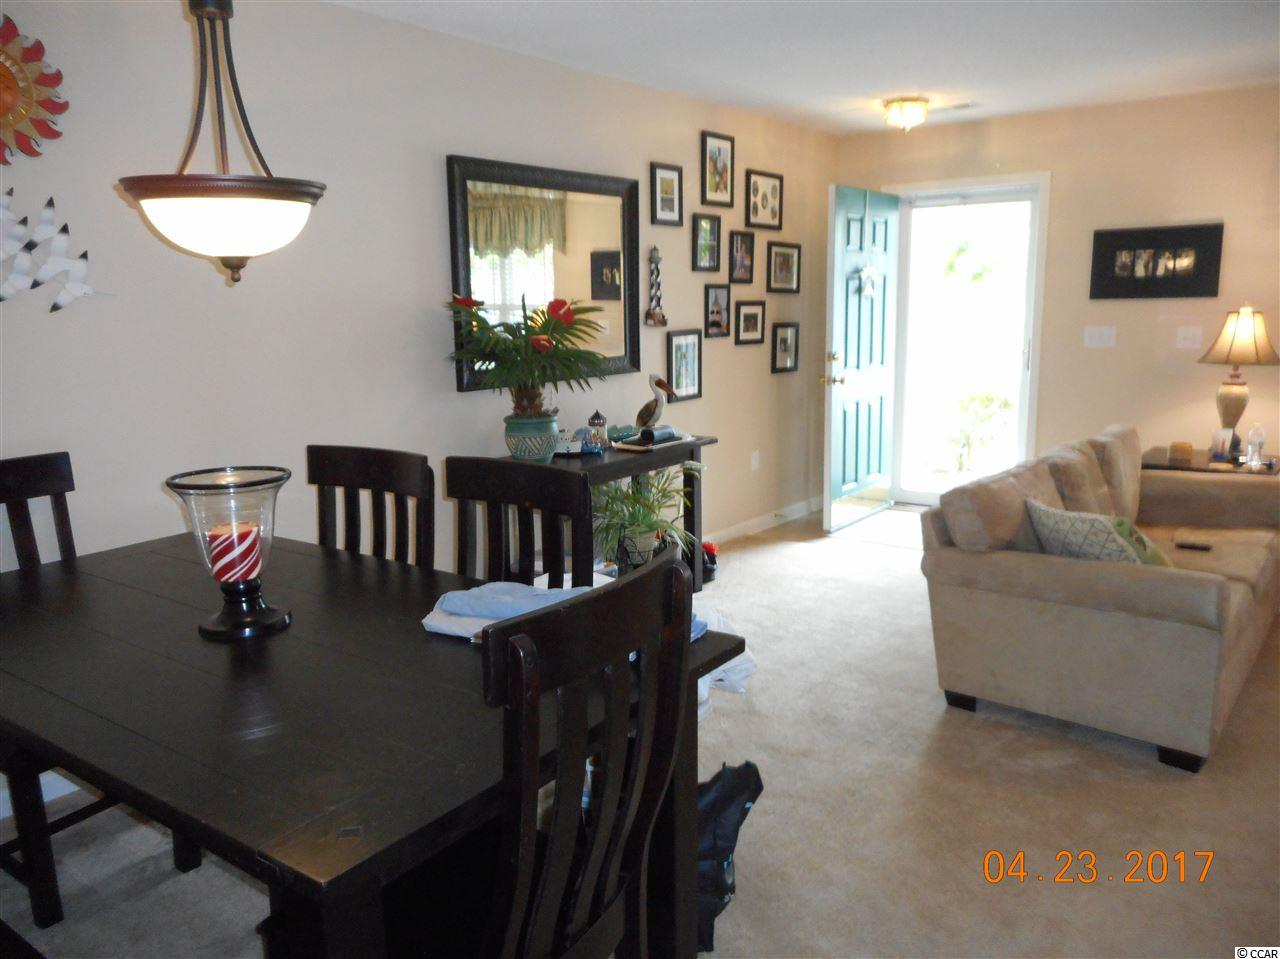 2 bedroom  PARKVIEW SUBDIVISION - 17TH AVE. condo for sale